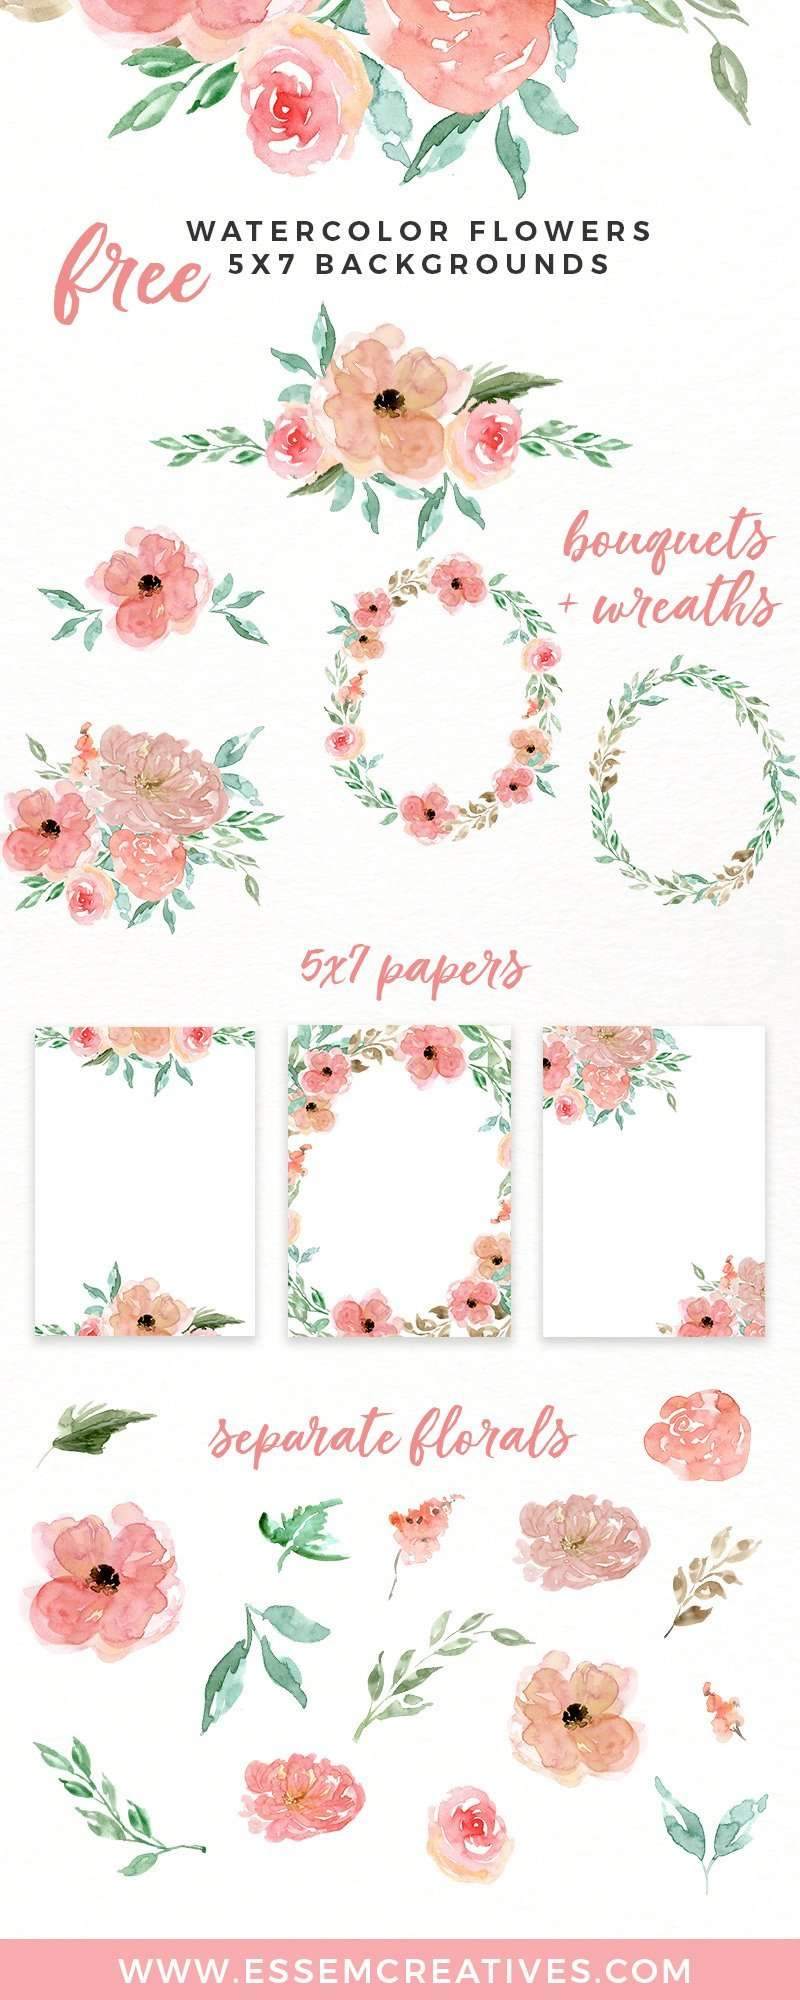 free watercolor flowers clipart, floral wreaths, 5x7 borders